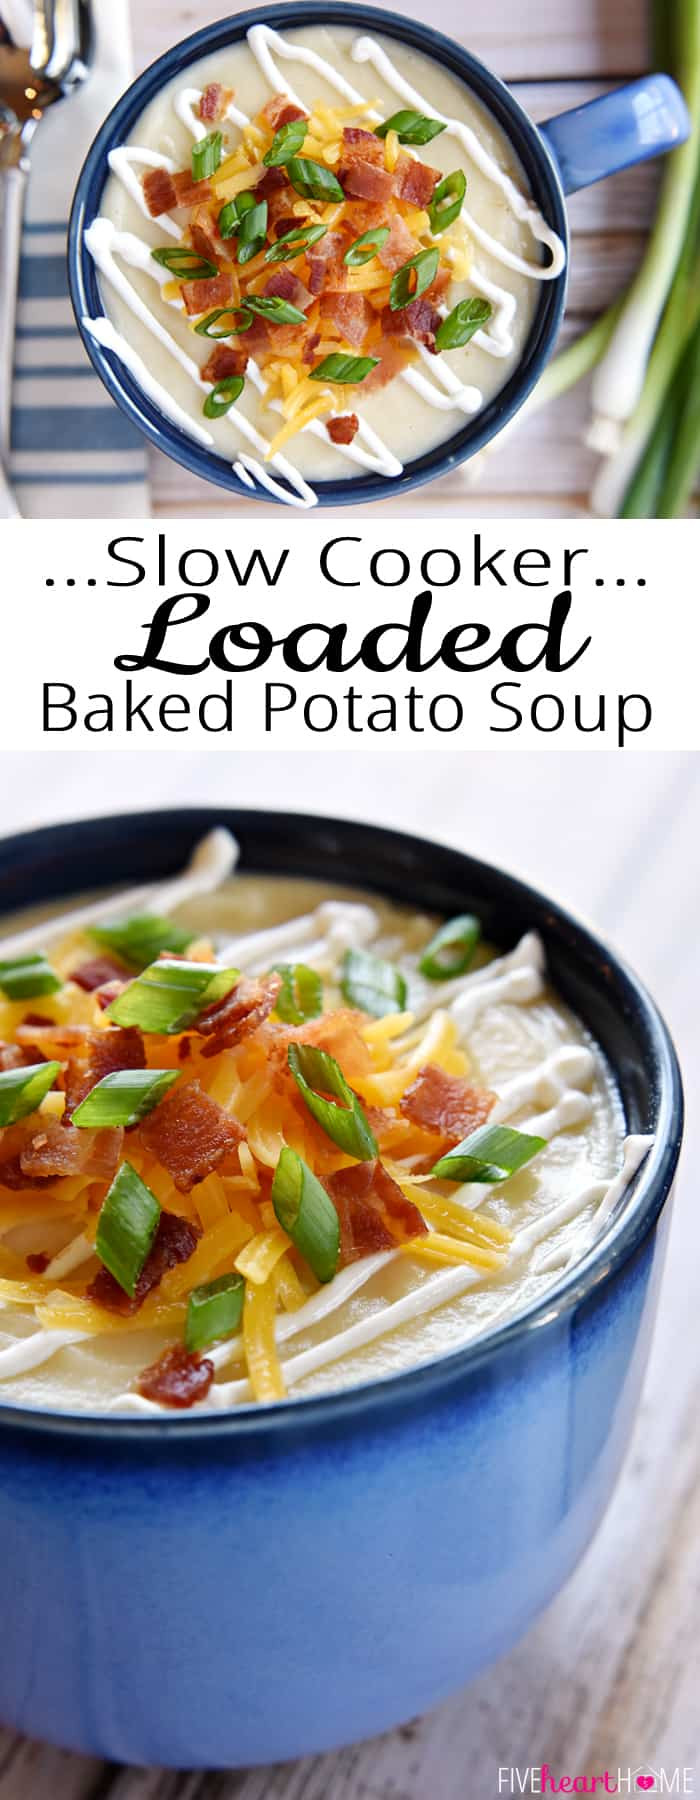 Slow Cooker Loaded Potato Soup  Slow Cooker Loaded Baked Potato Soup